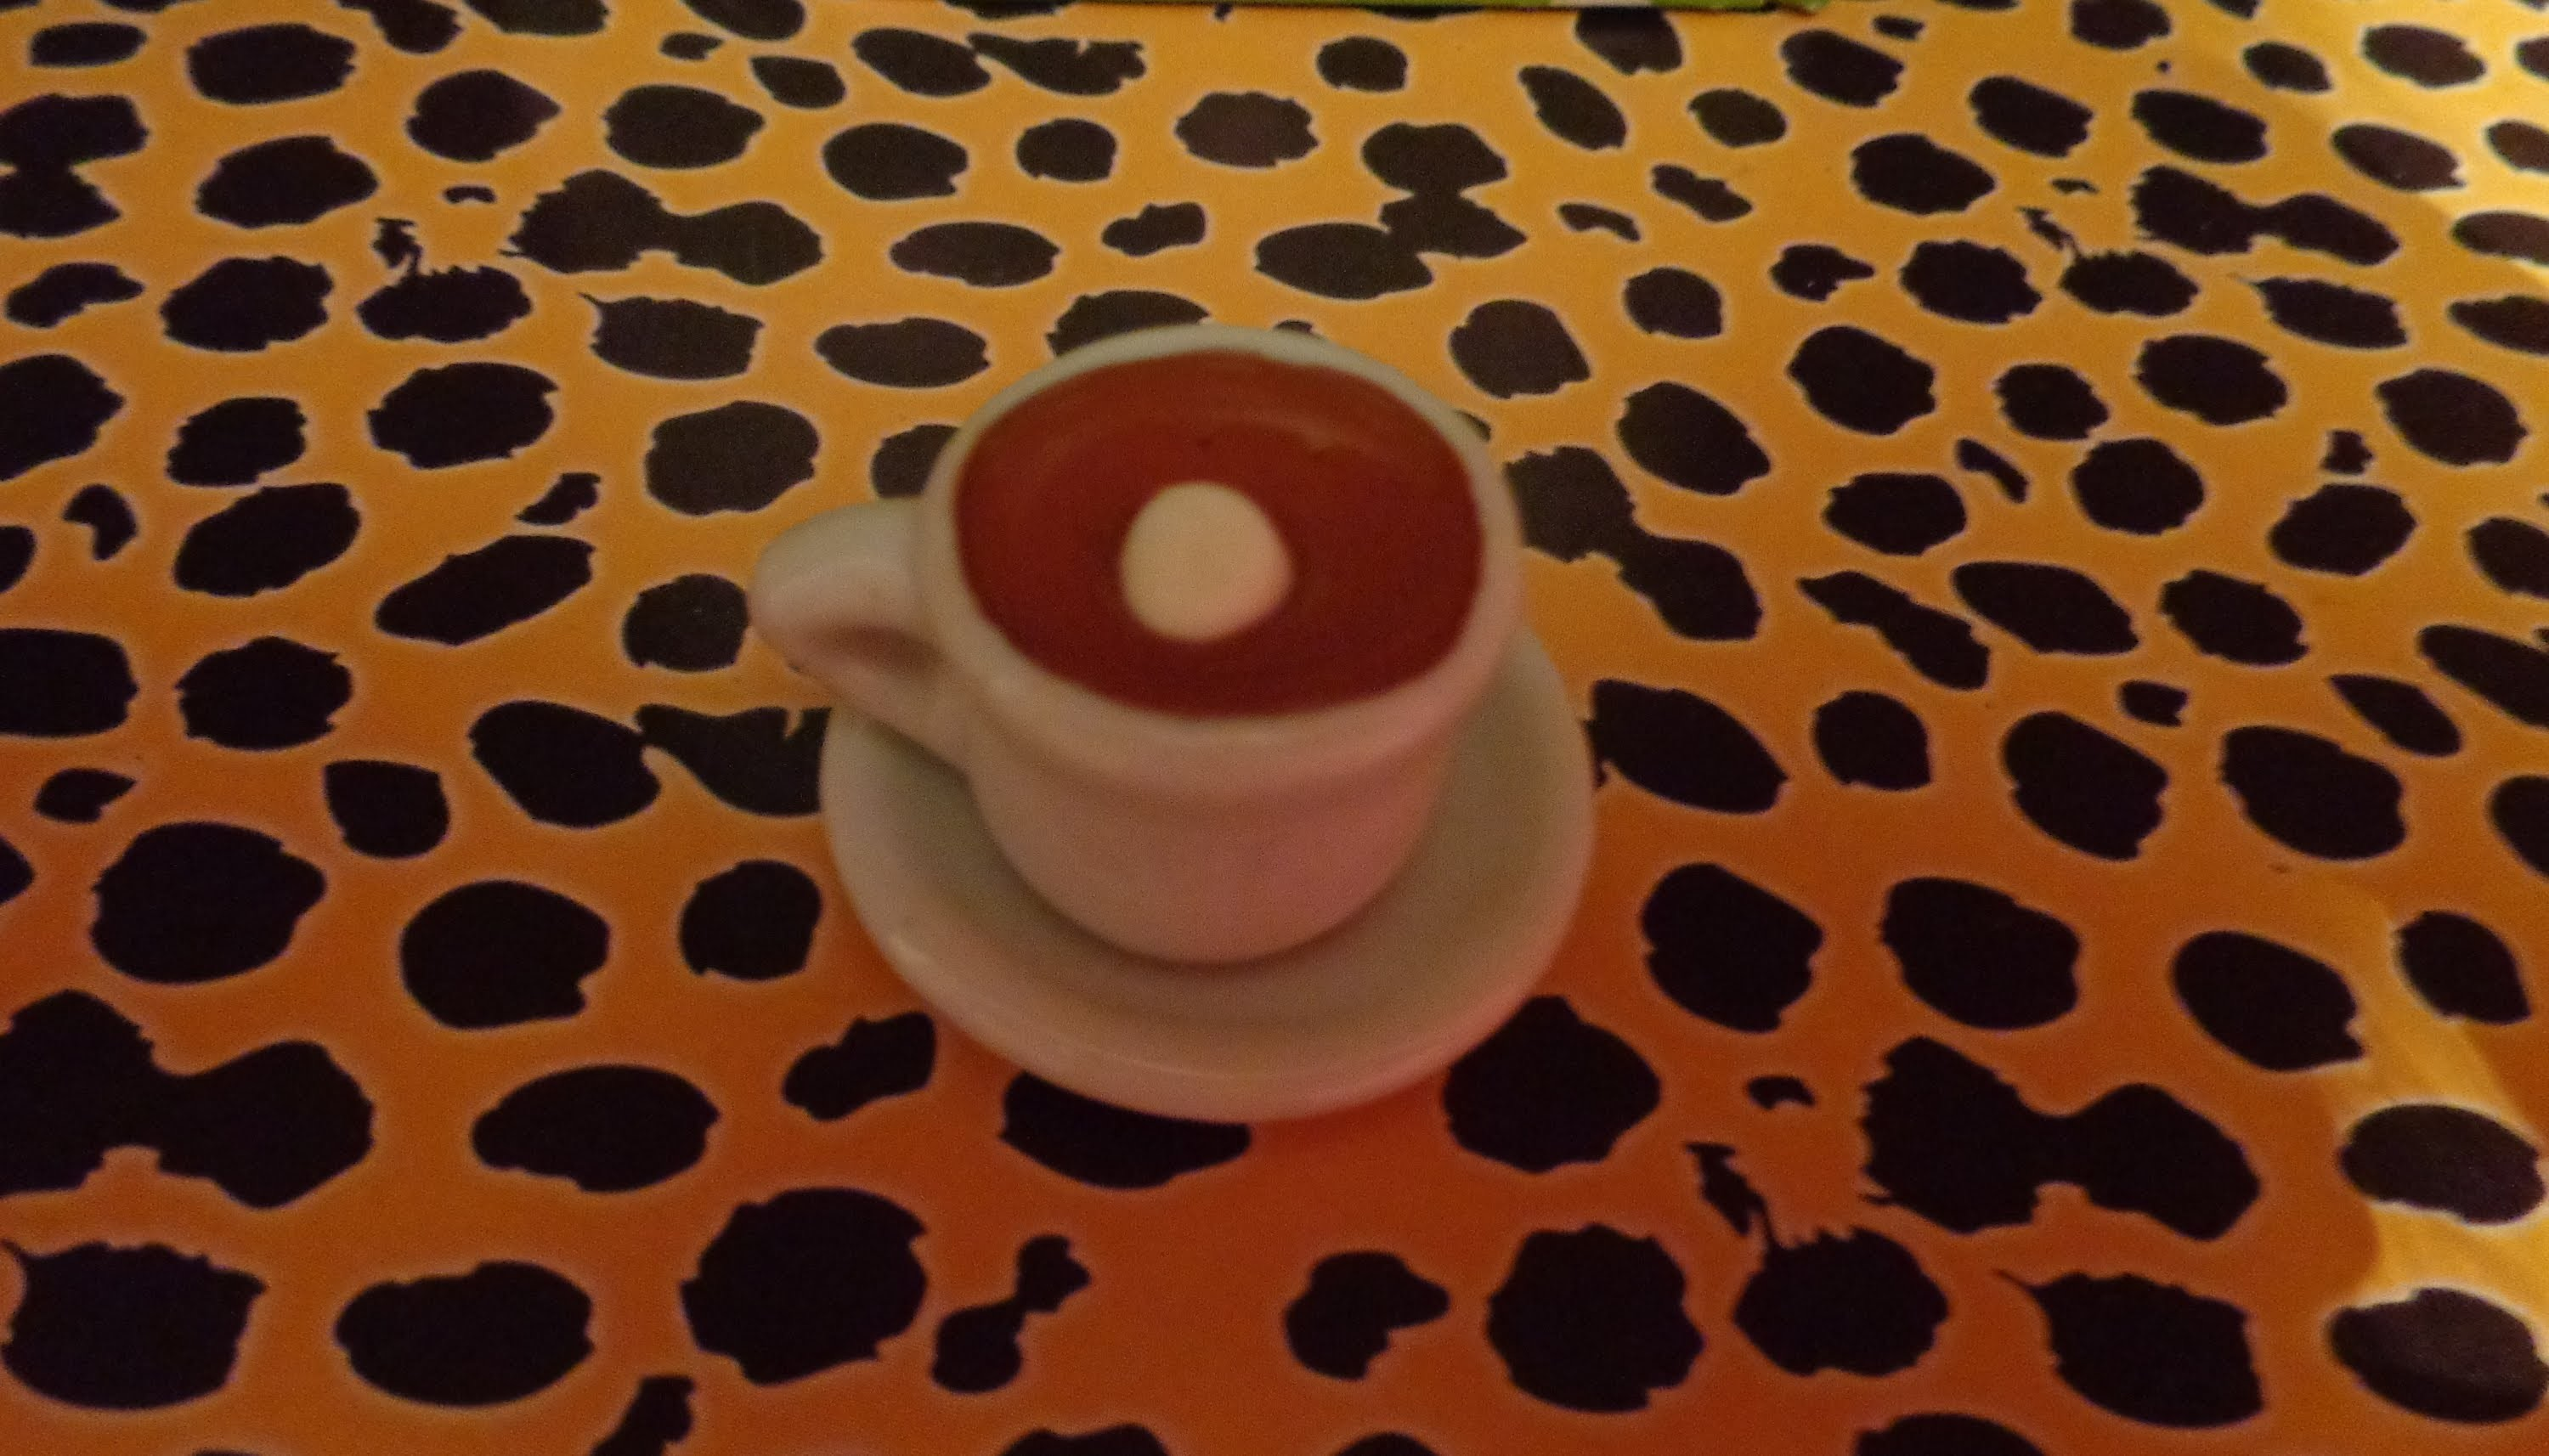 LPS Crafts - How to Make Hot Chocolate with Marshmallow